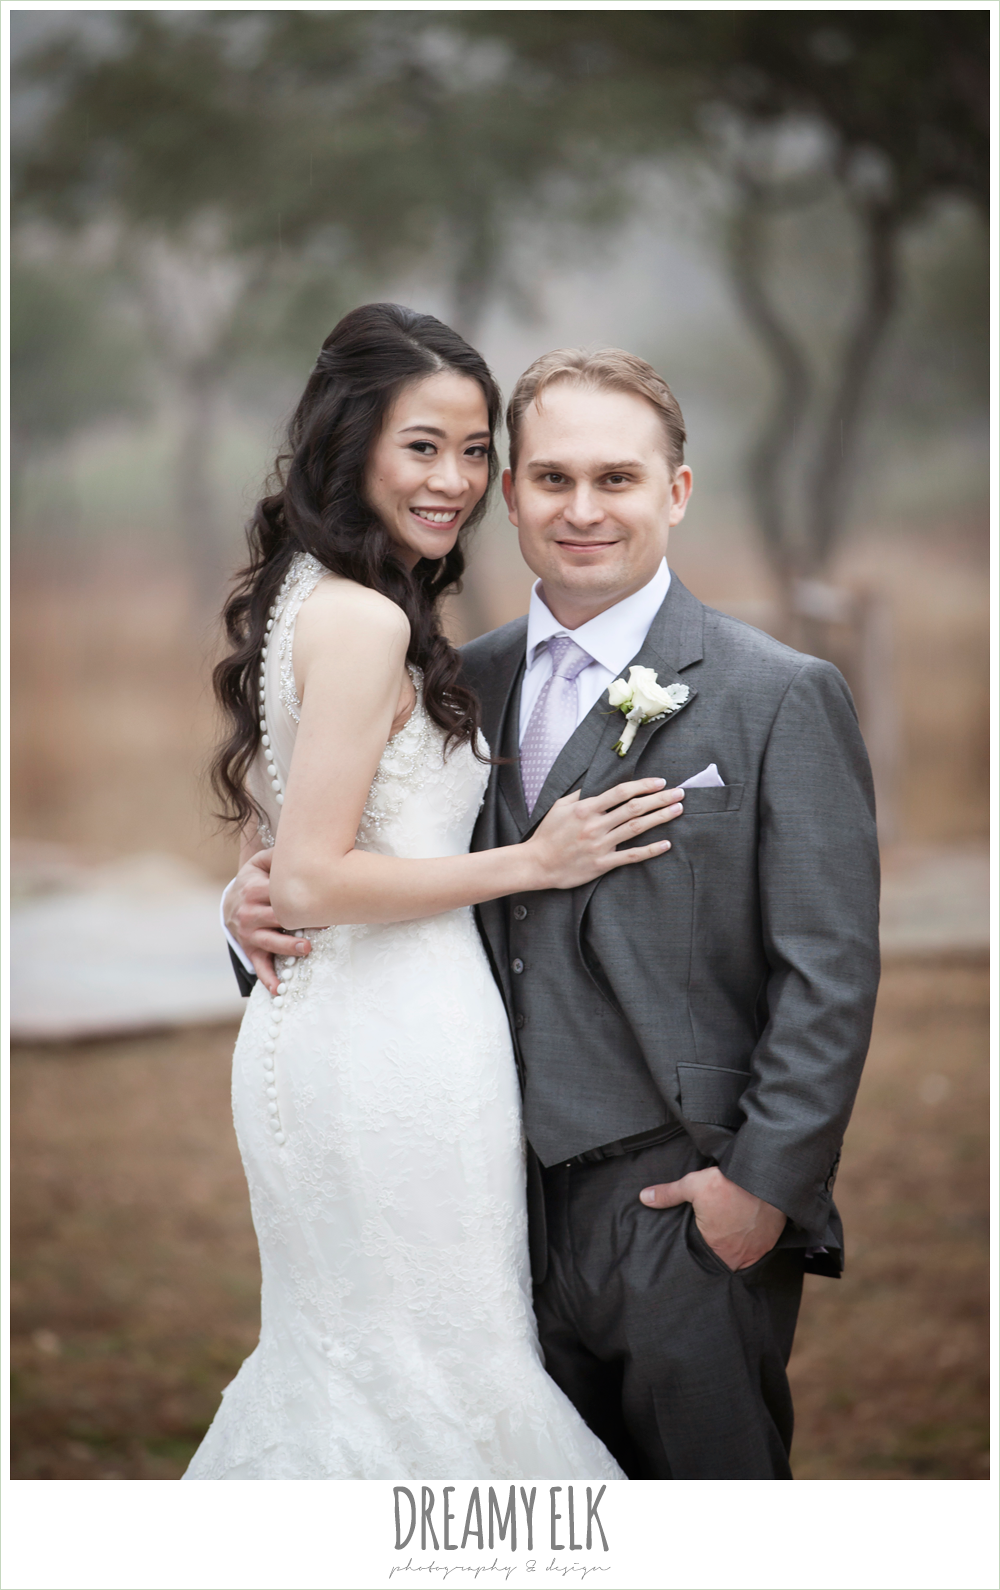 high necked trumpet wedding dress, illusion back wedding dress, groom in gray suit and light purple tie, foggy wedding day {dreamy elk photography and design}